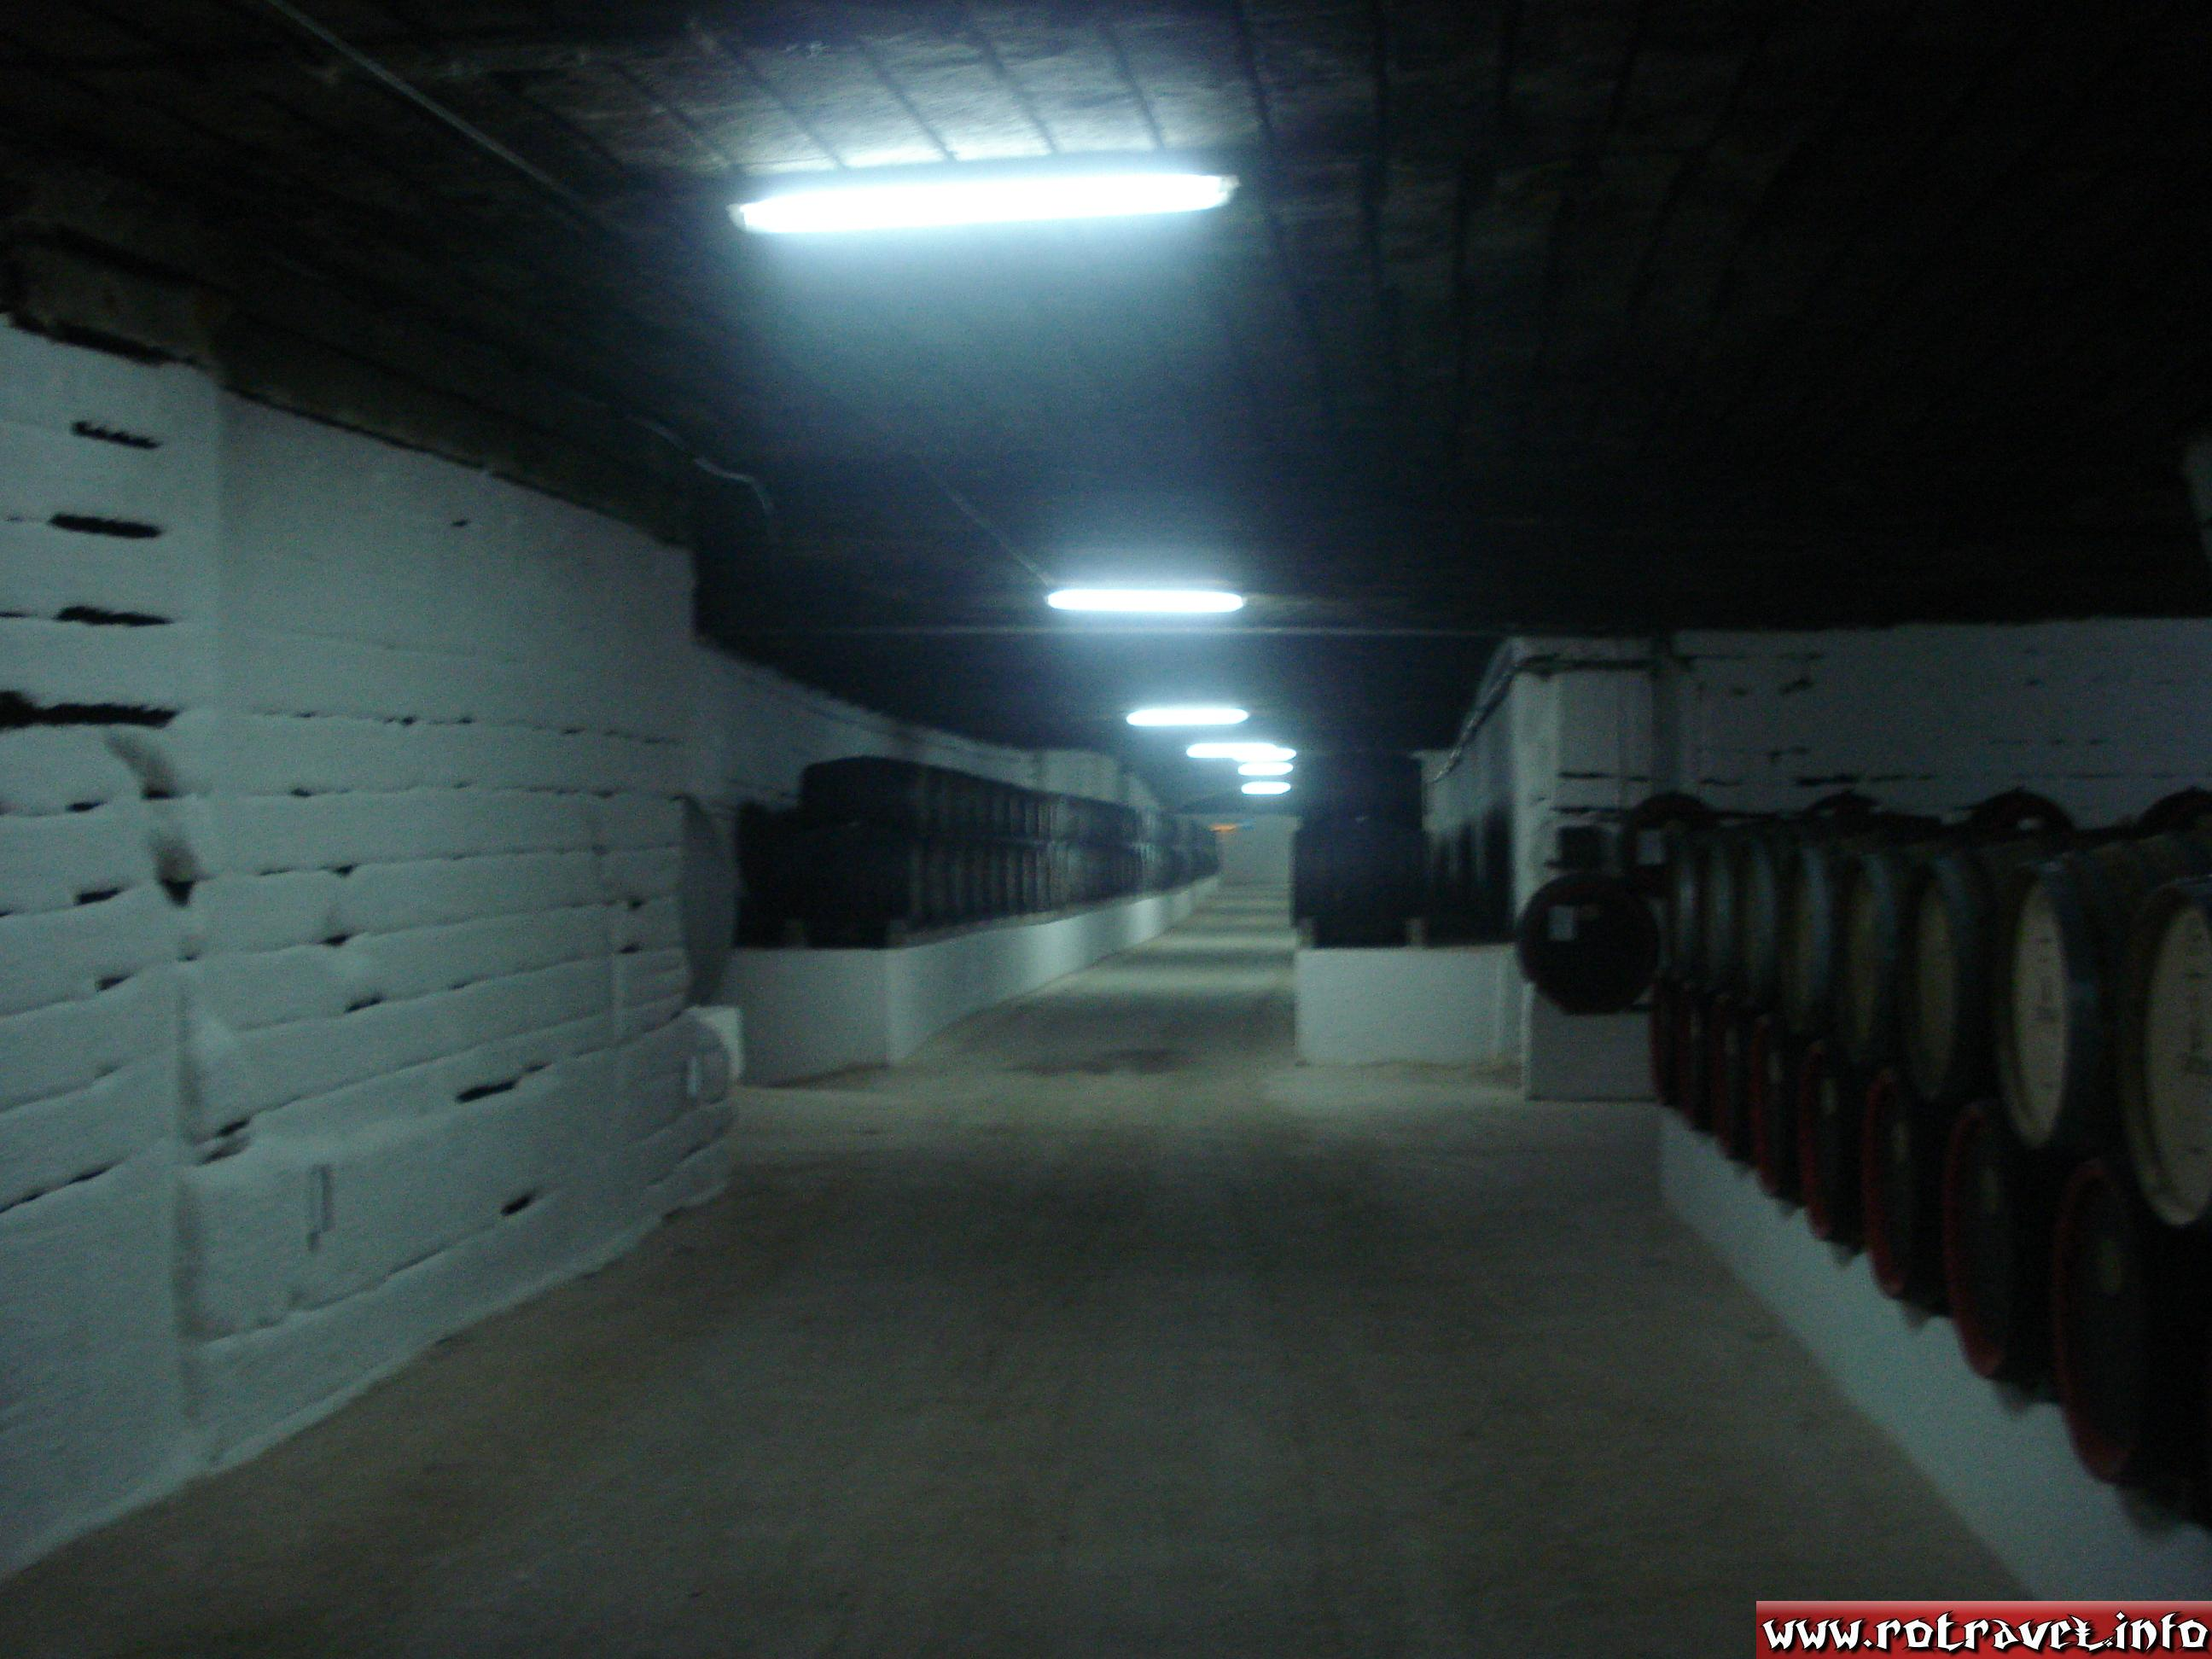 A cellar located on Cabernet Street, where is kept the Pinot wine.